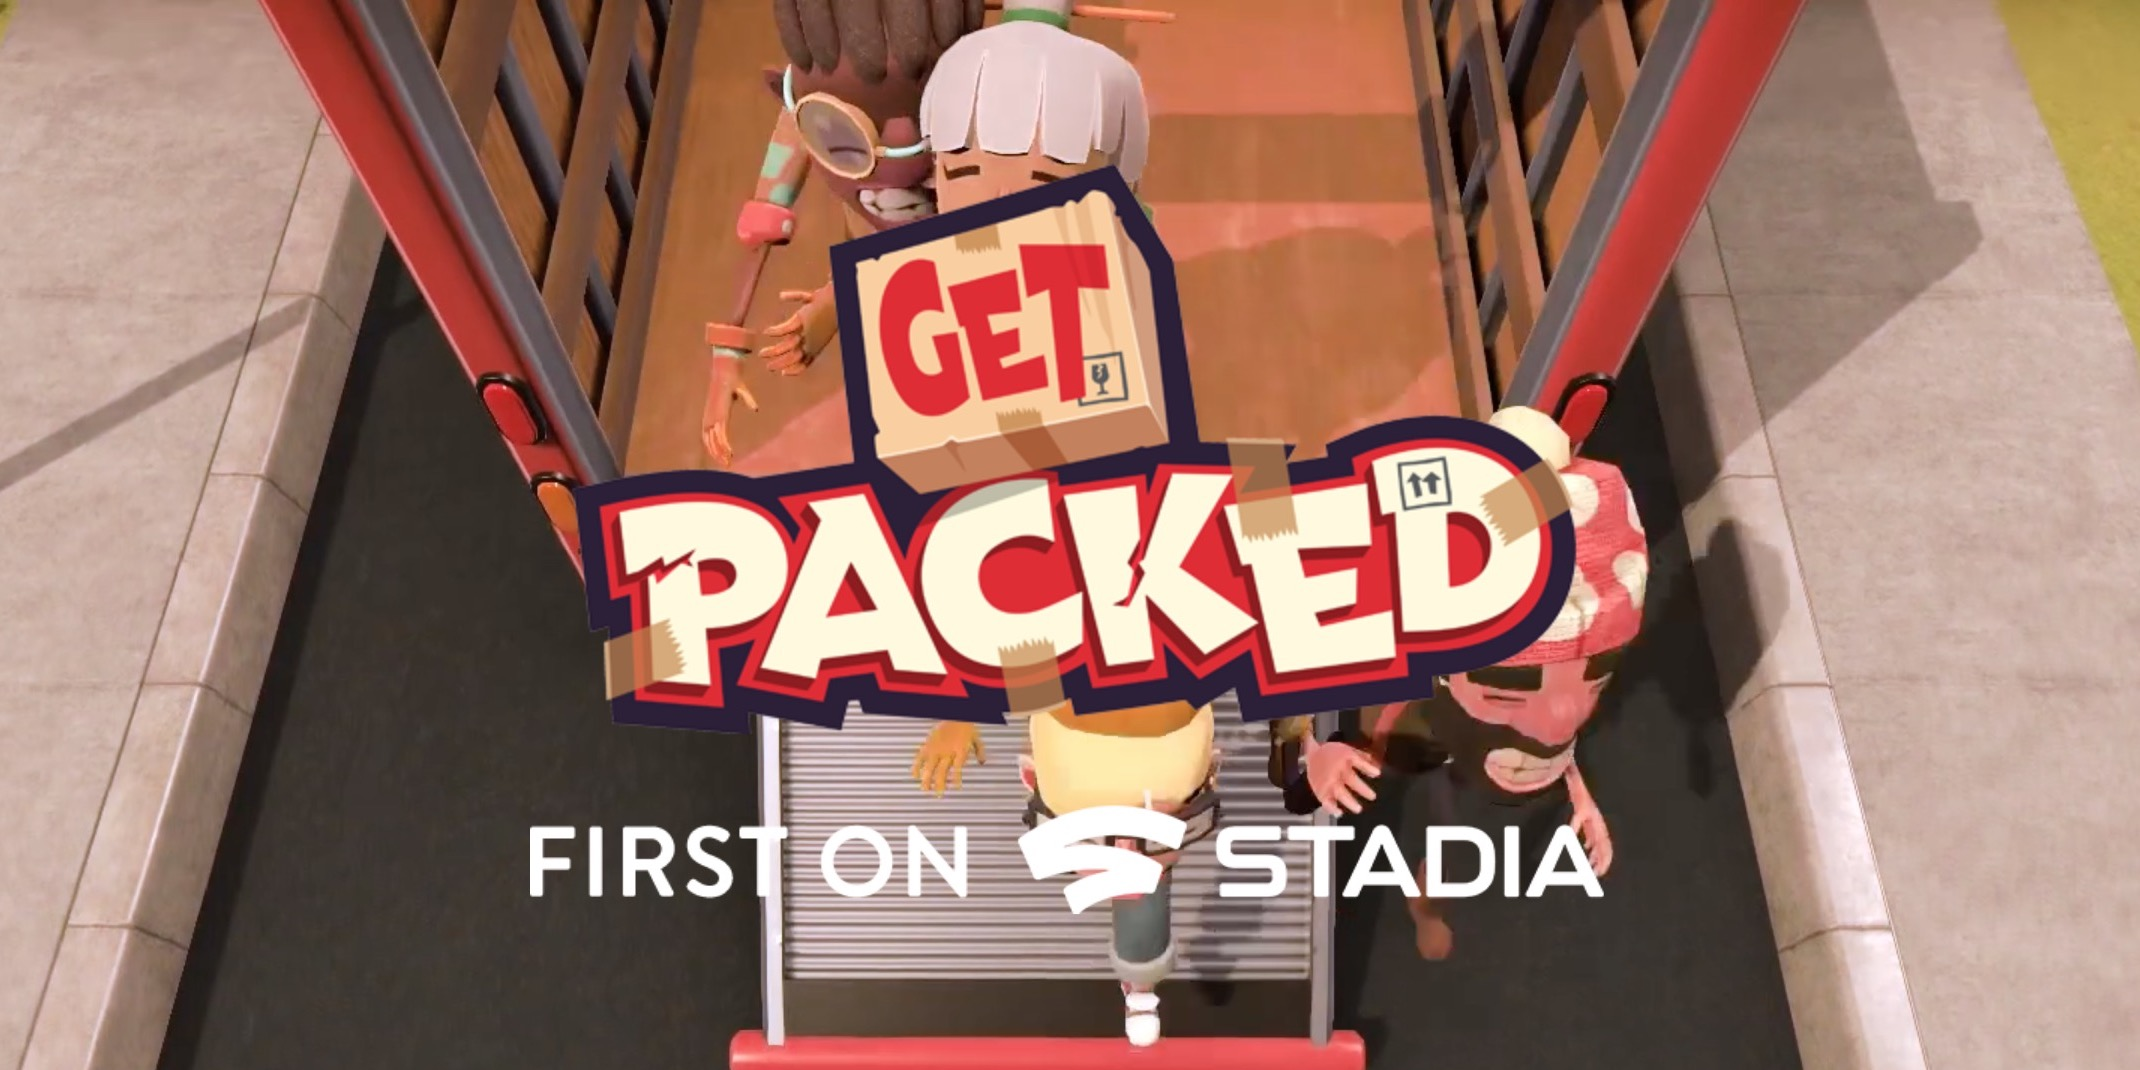 Get Packed teases Stadia release date with Premiere Edition giveaway